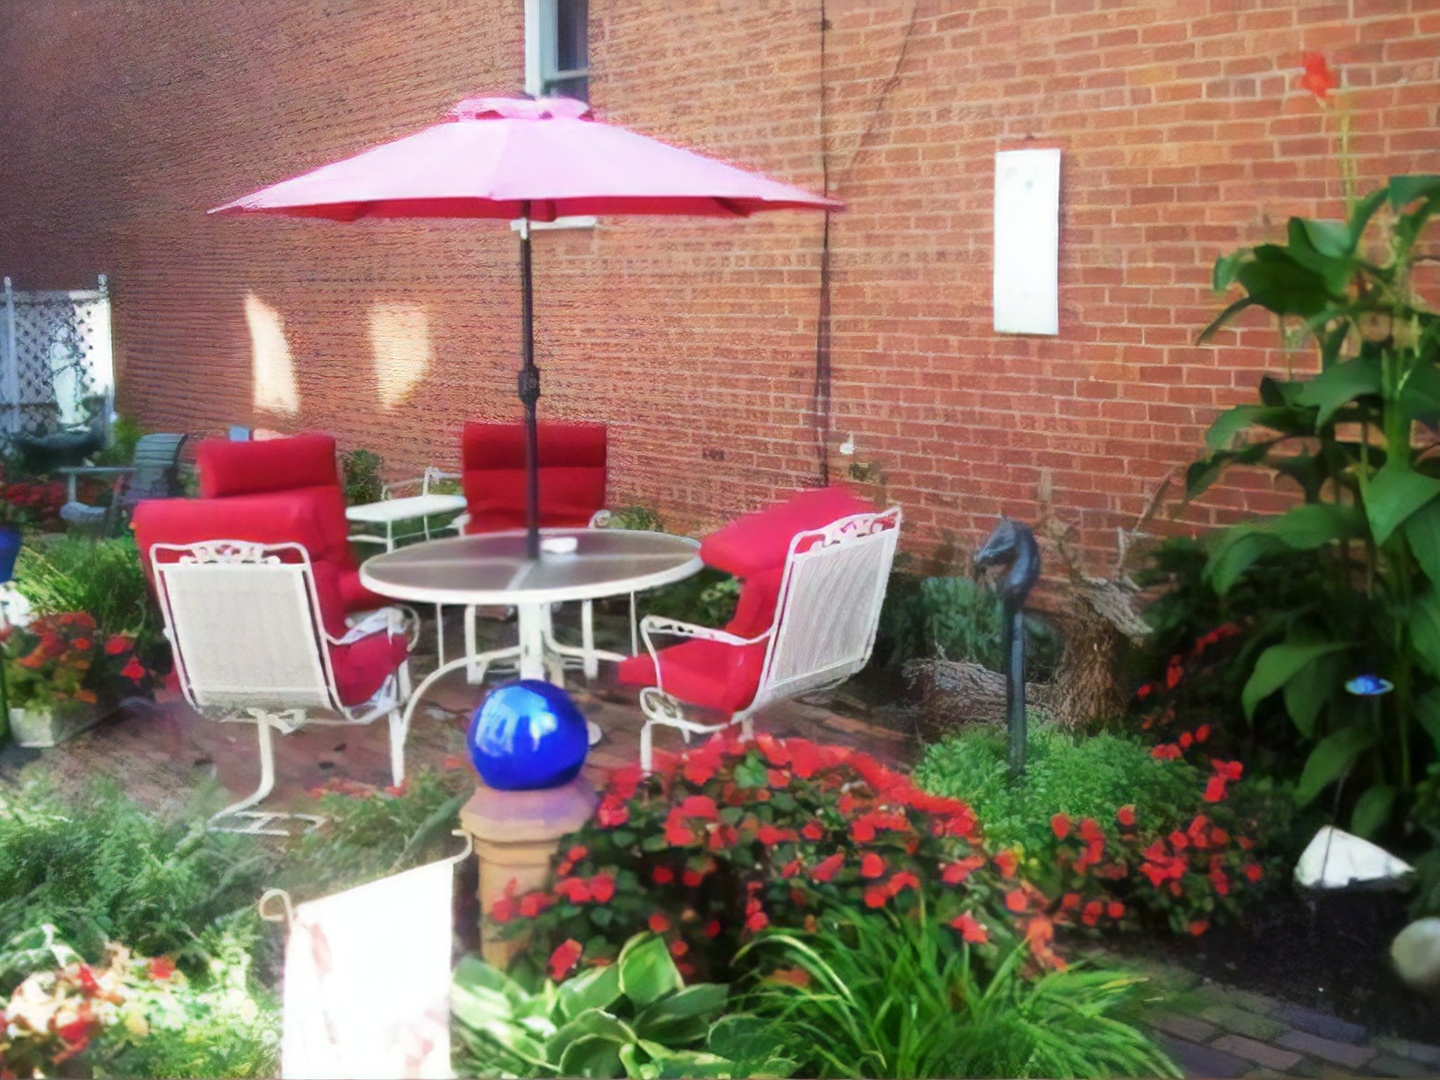 A large red chair in a garden at Gateway Bed and Breakfast.